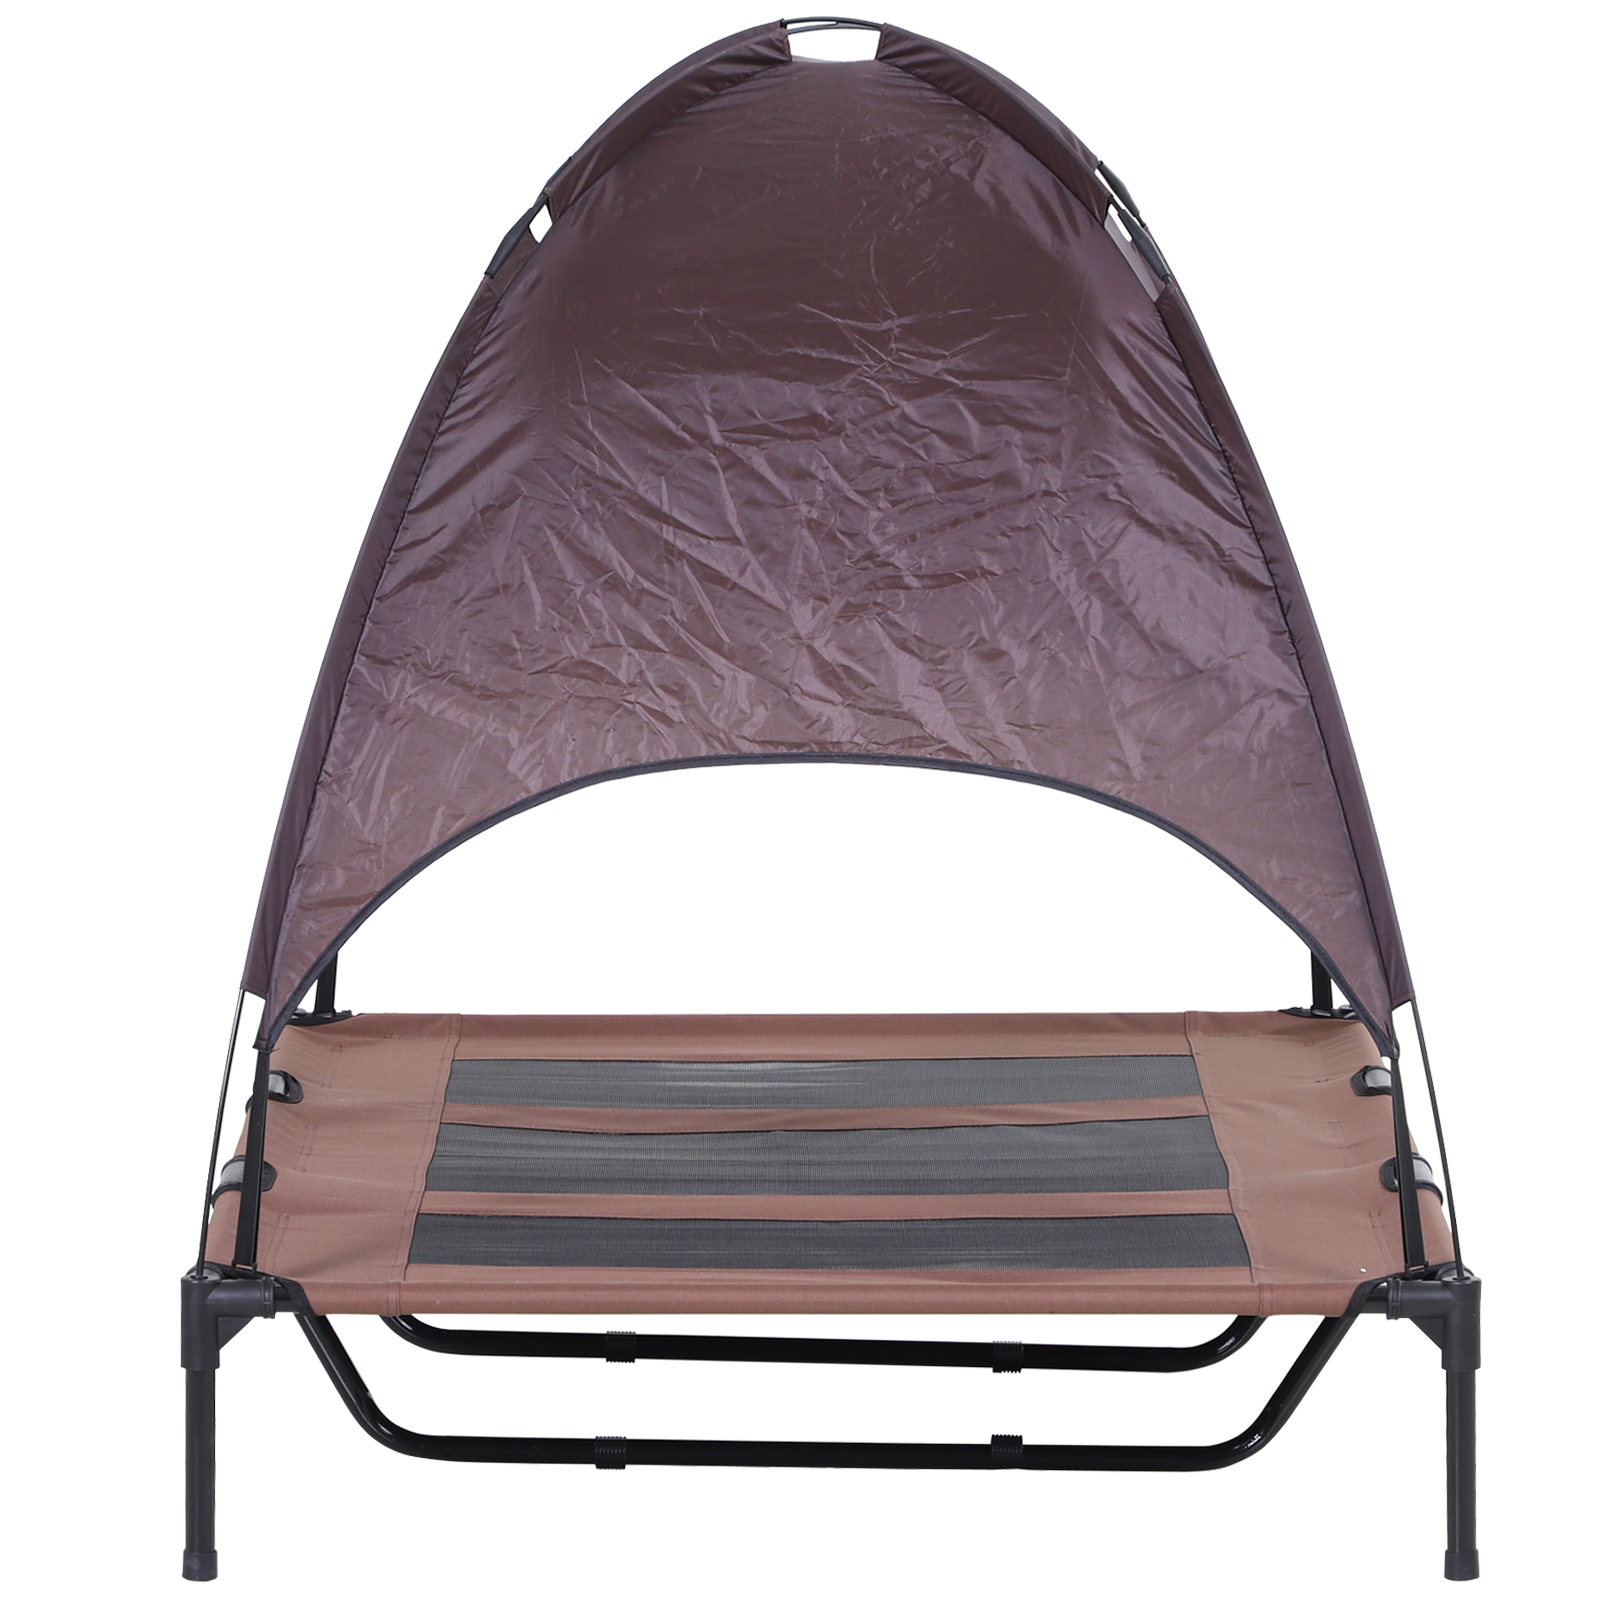 PawHut-Elevated-Pet-Bed-Dog-Foldable-Cot-Tent-Canopy thumbnail 11